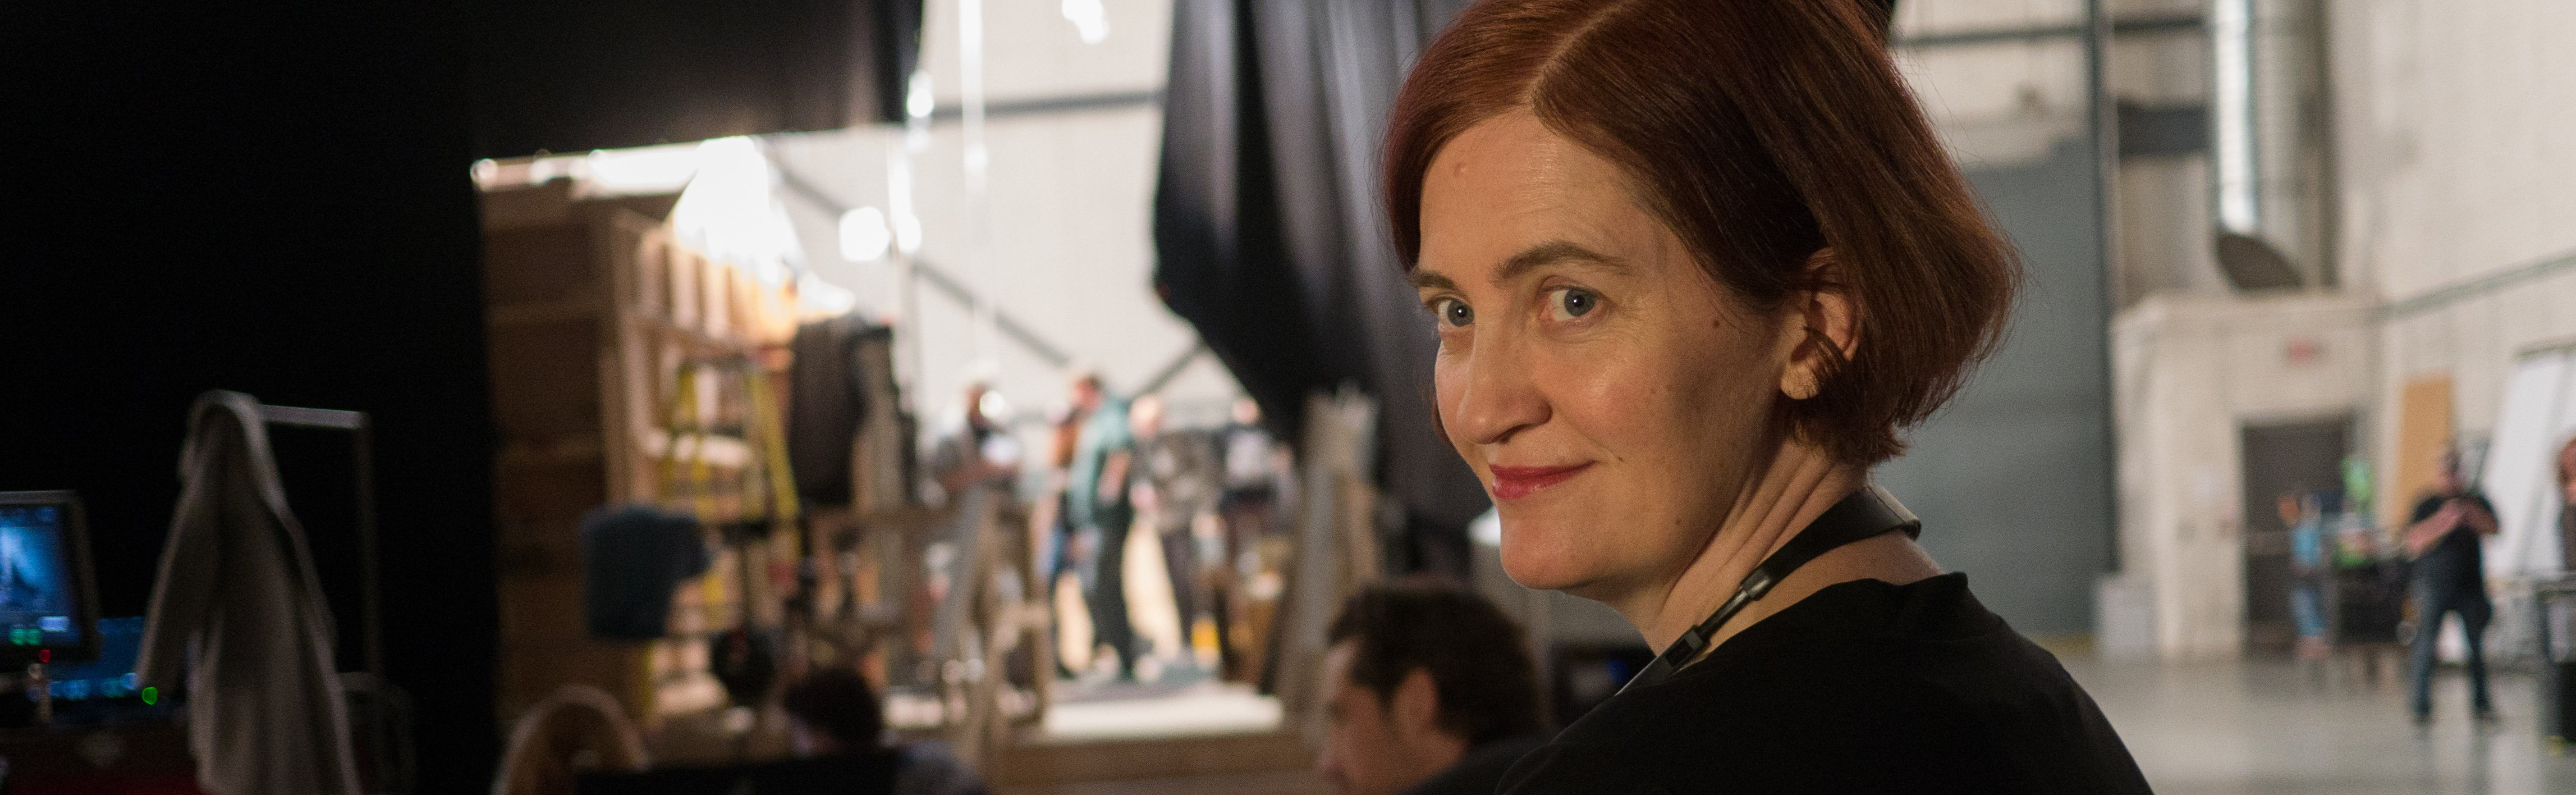 Exclusive Room screenwriter Emma Donoghue on how her